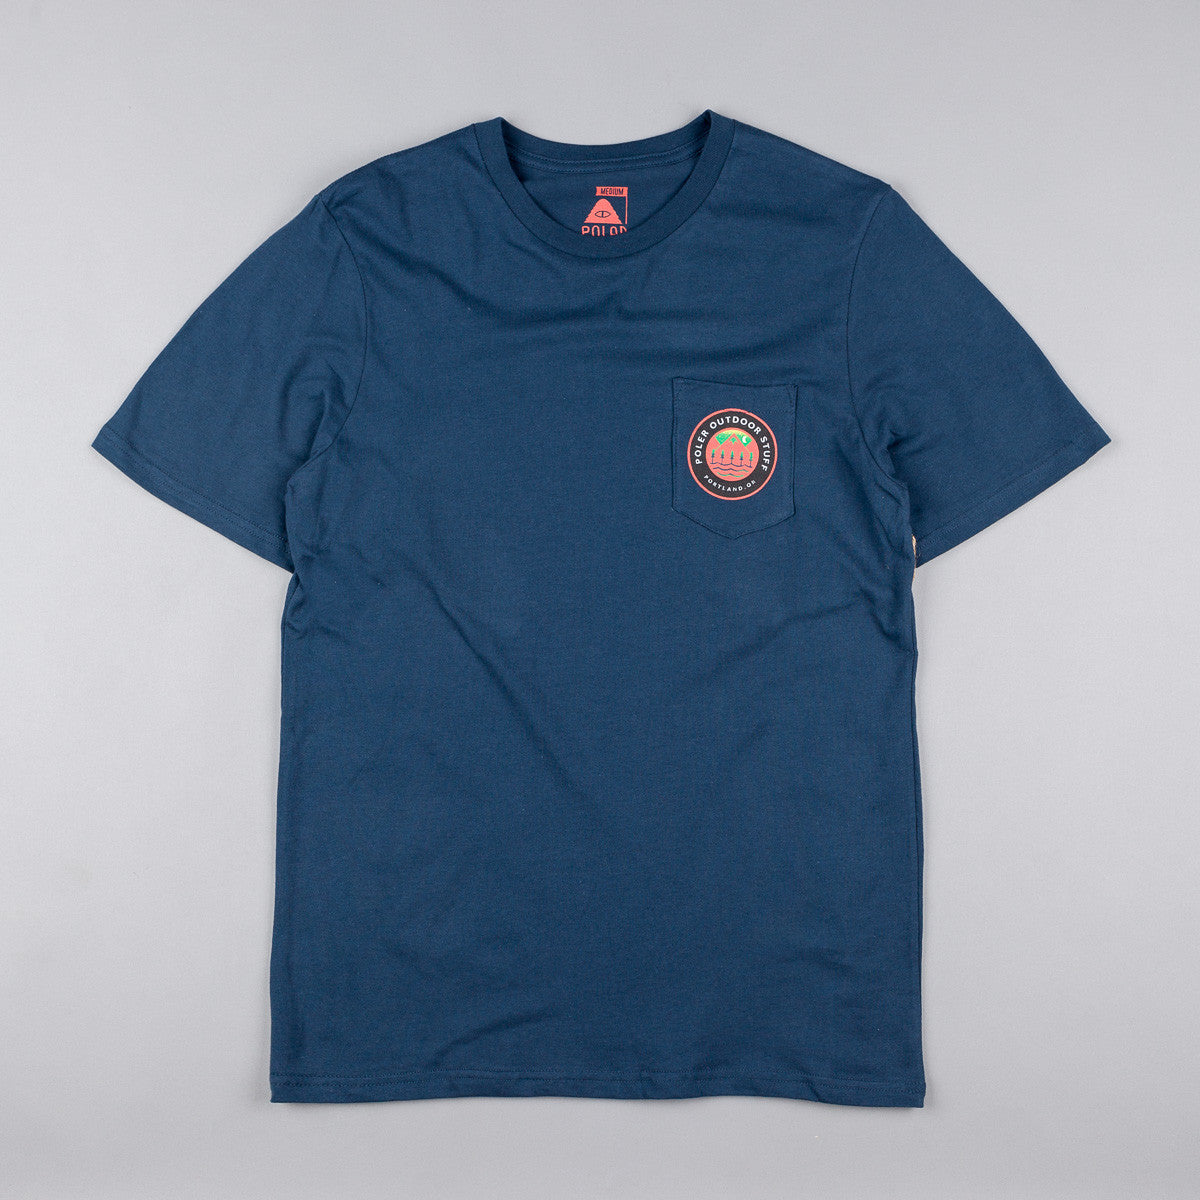 Poler Outdoors Seal Pocket T-Shirt